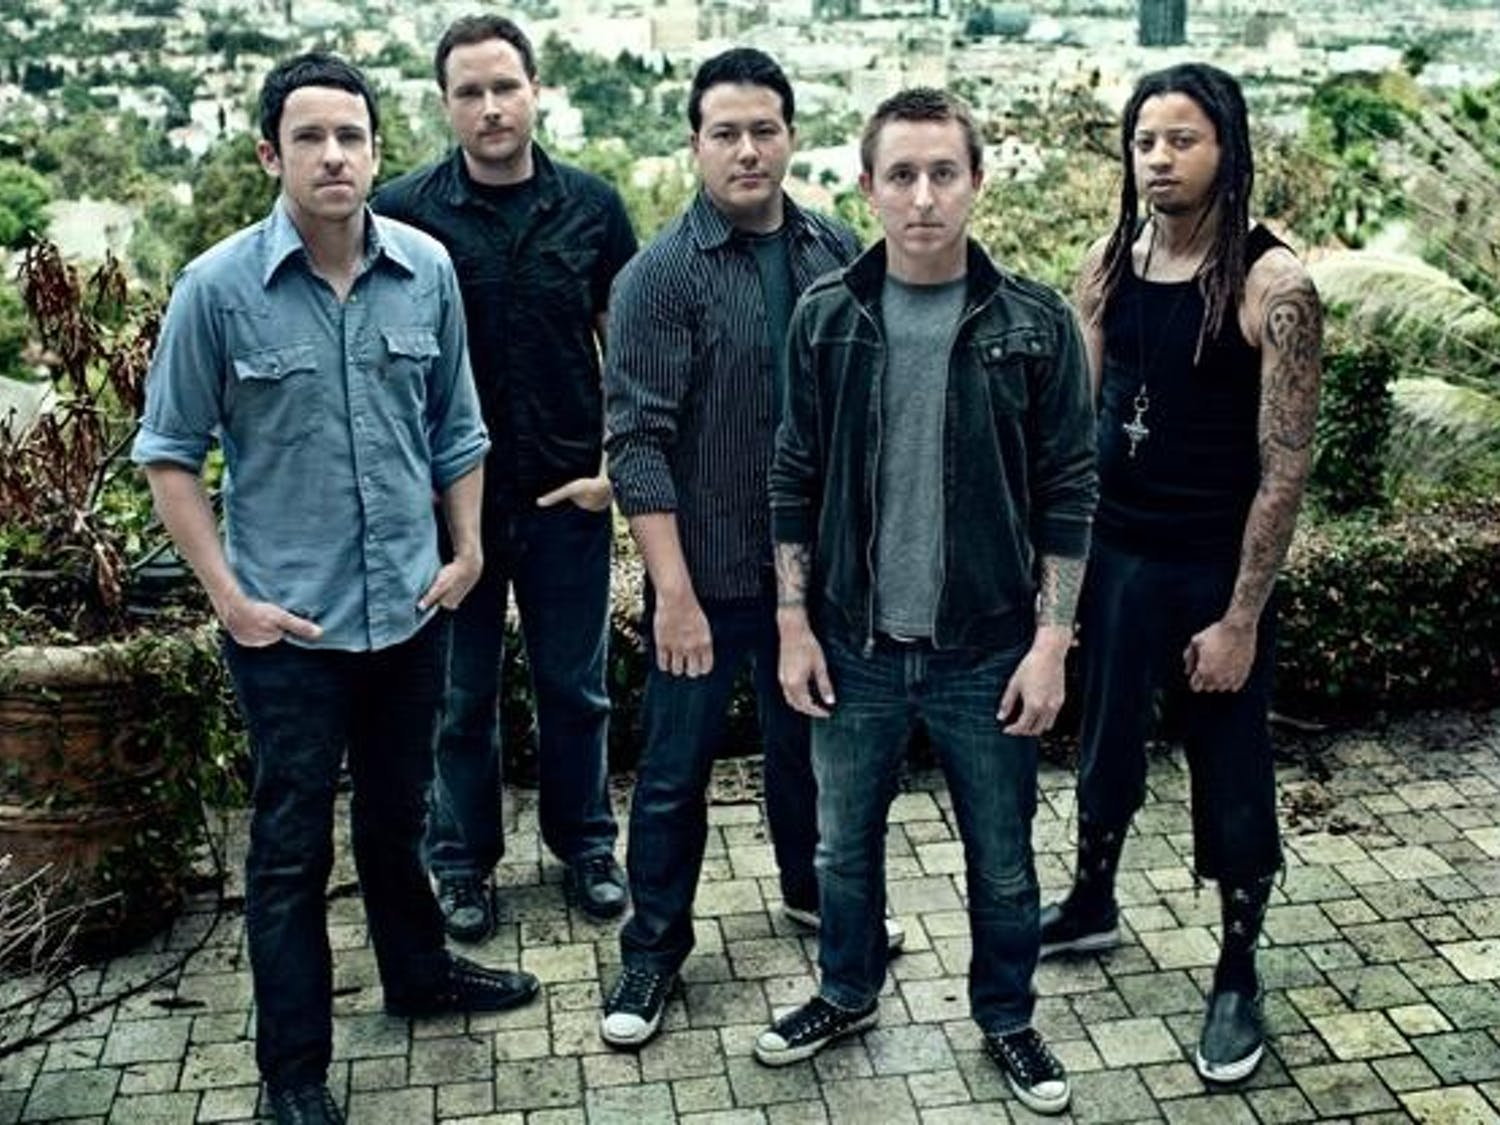 No more denying Yellowcard's return